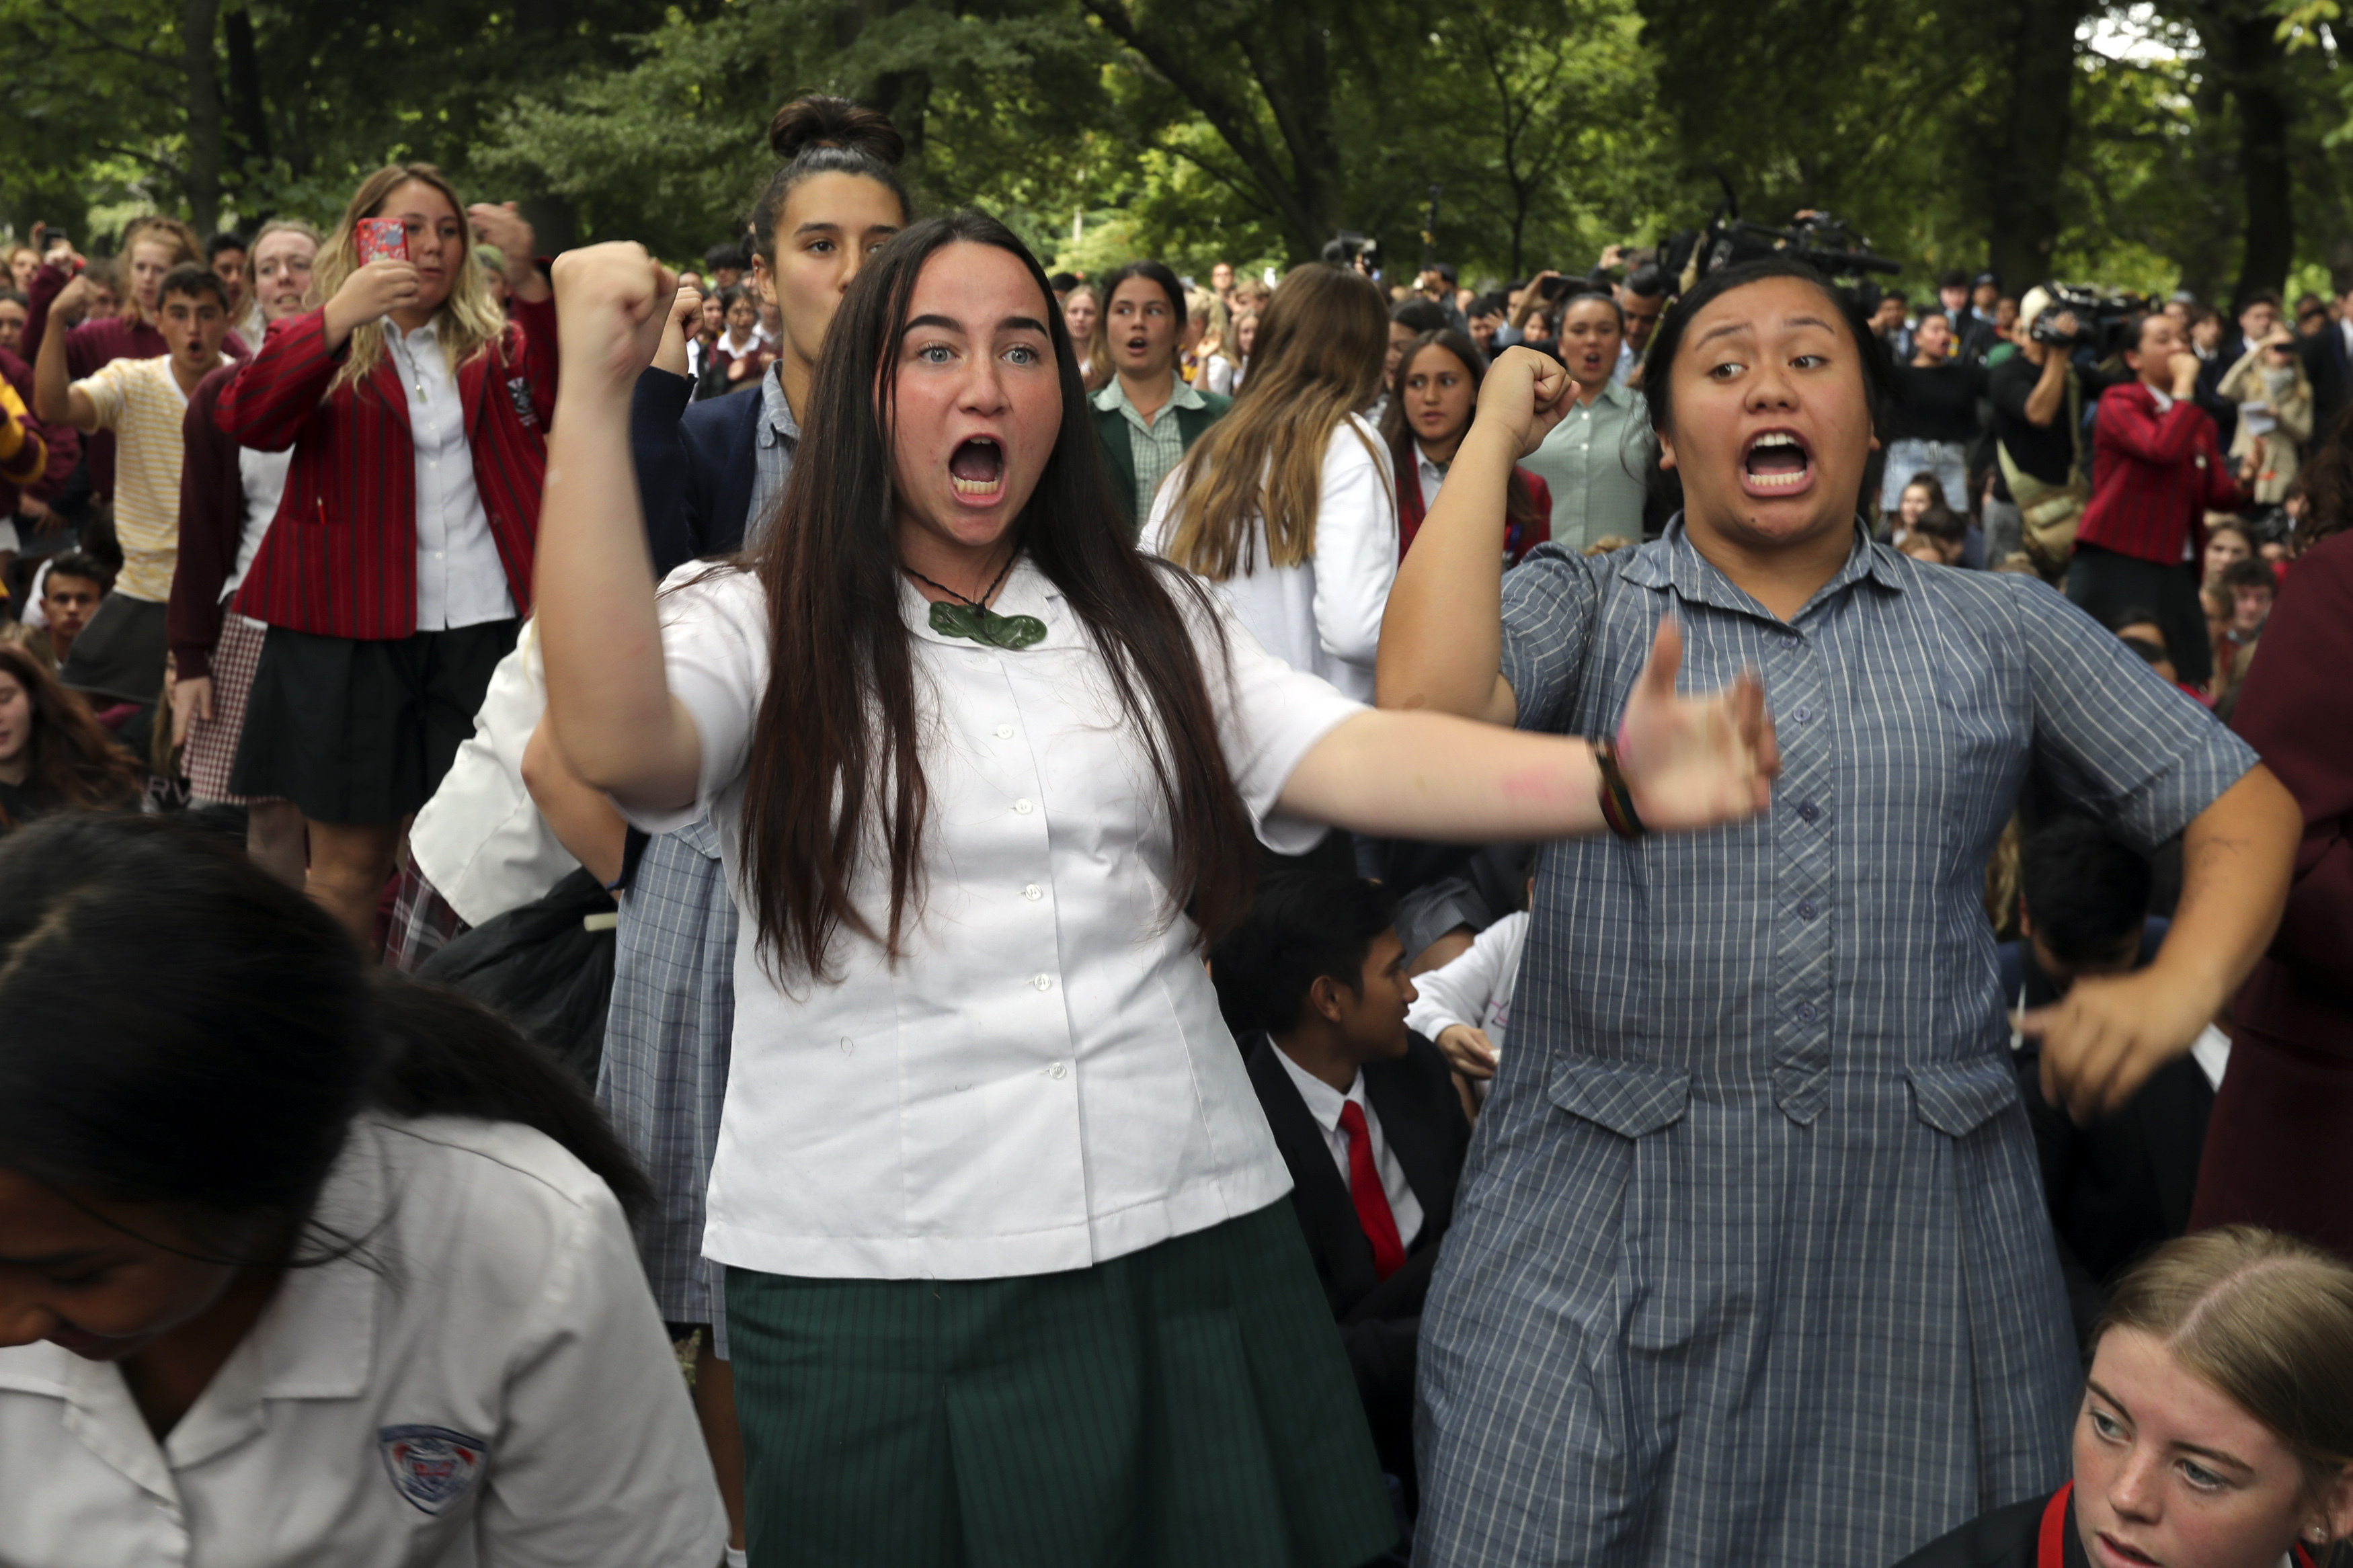 Students perform a traditional Haka dance. Credit PA